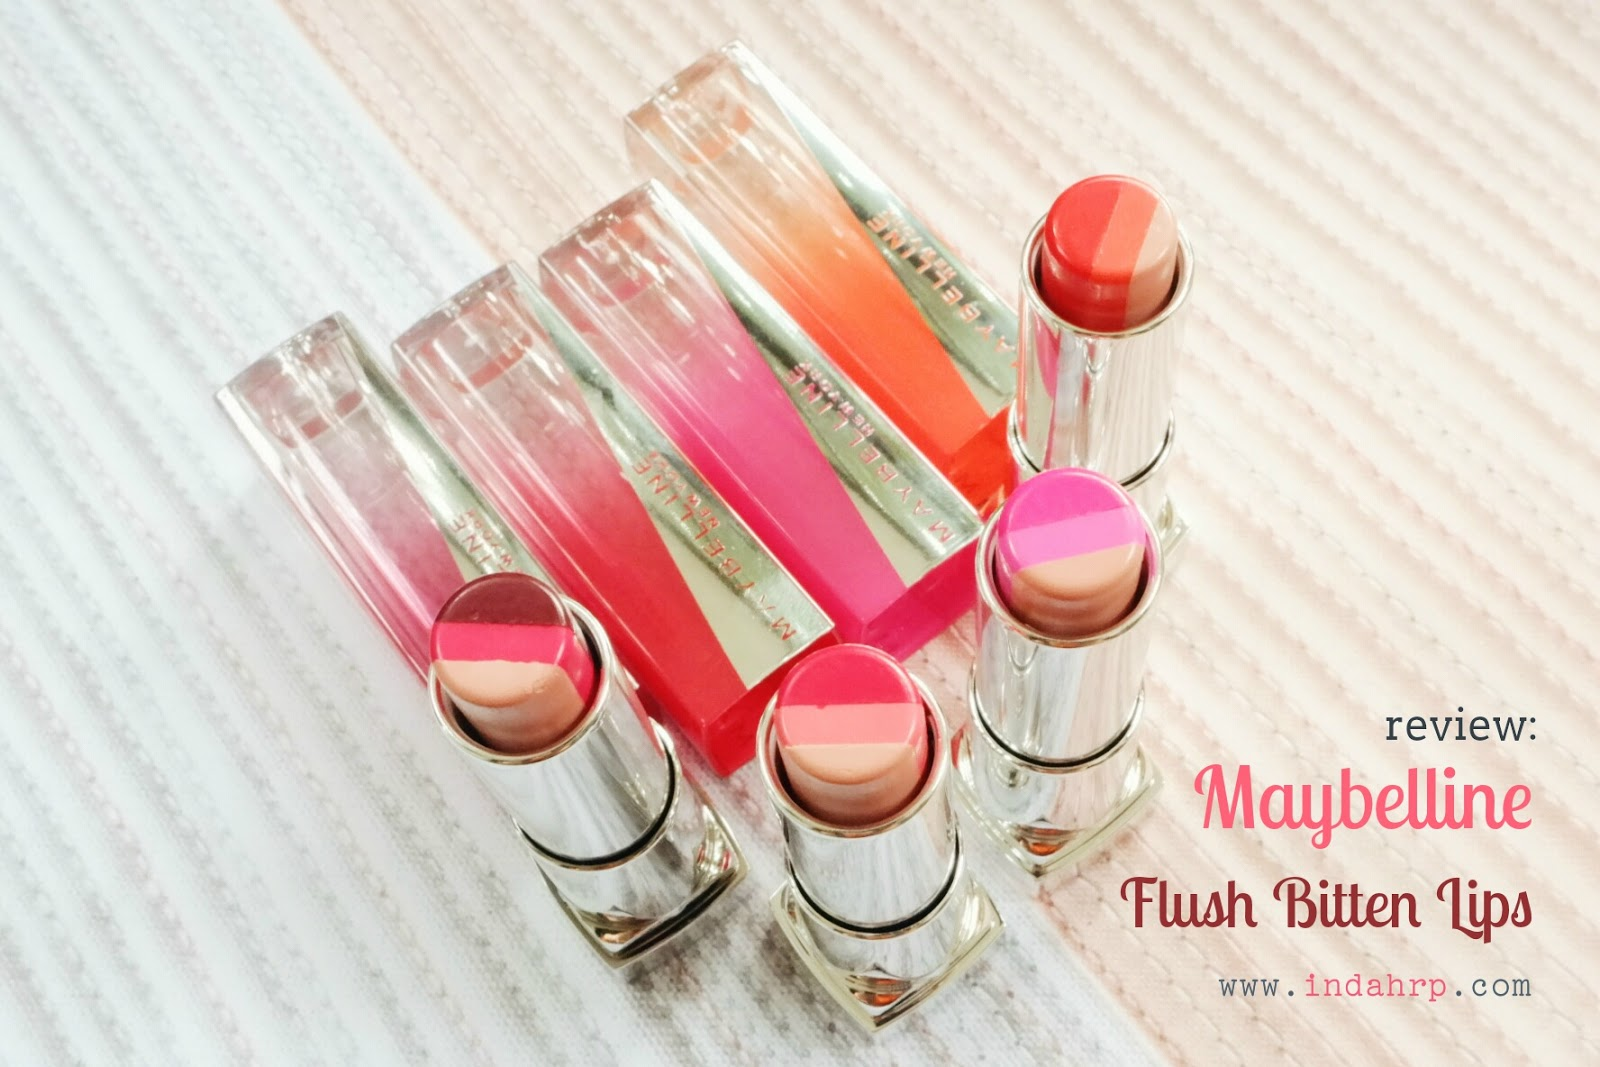 Lipstik Maybelline Review Flush Bitten Lips Indahrp